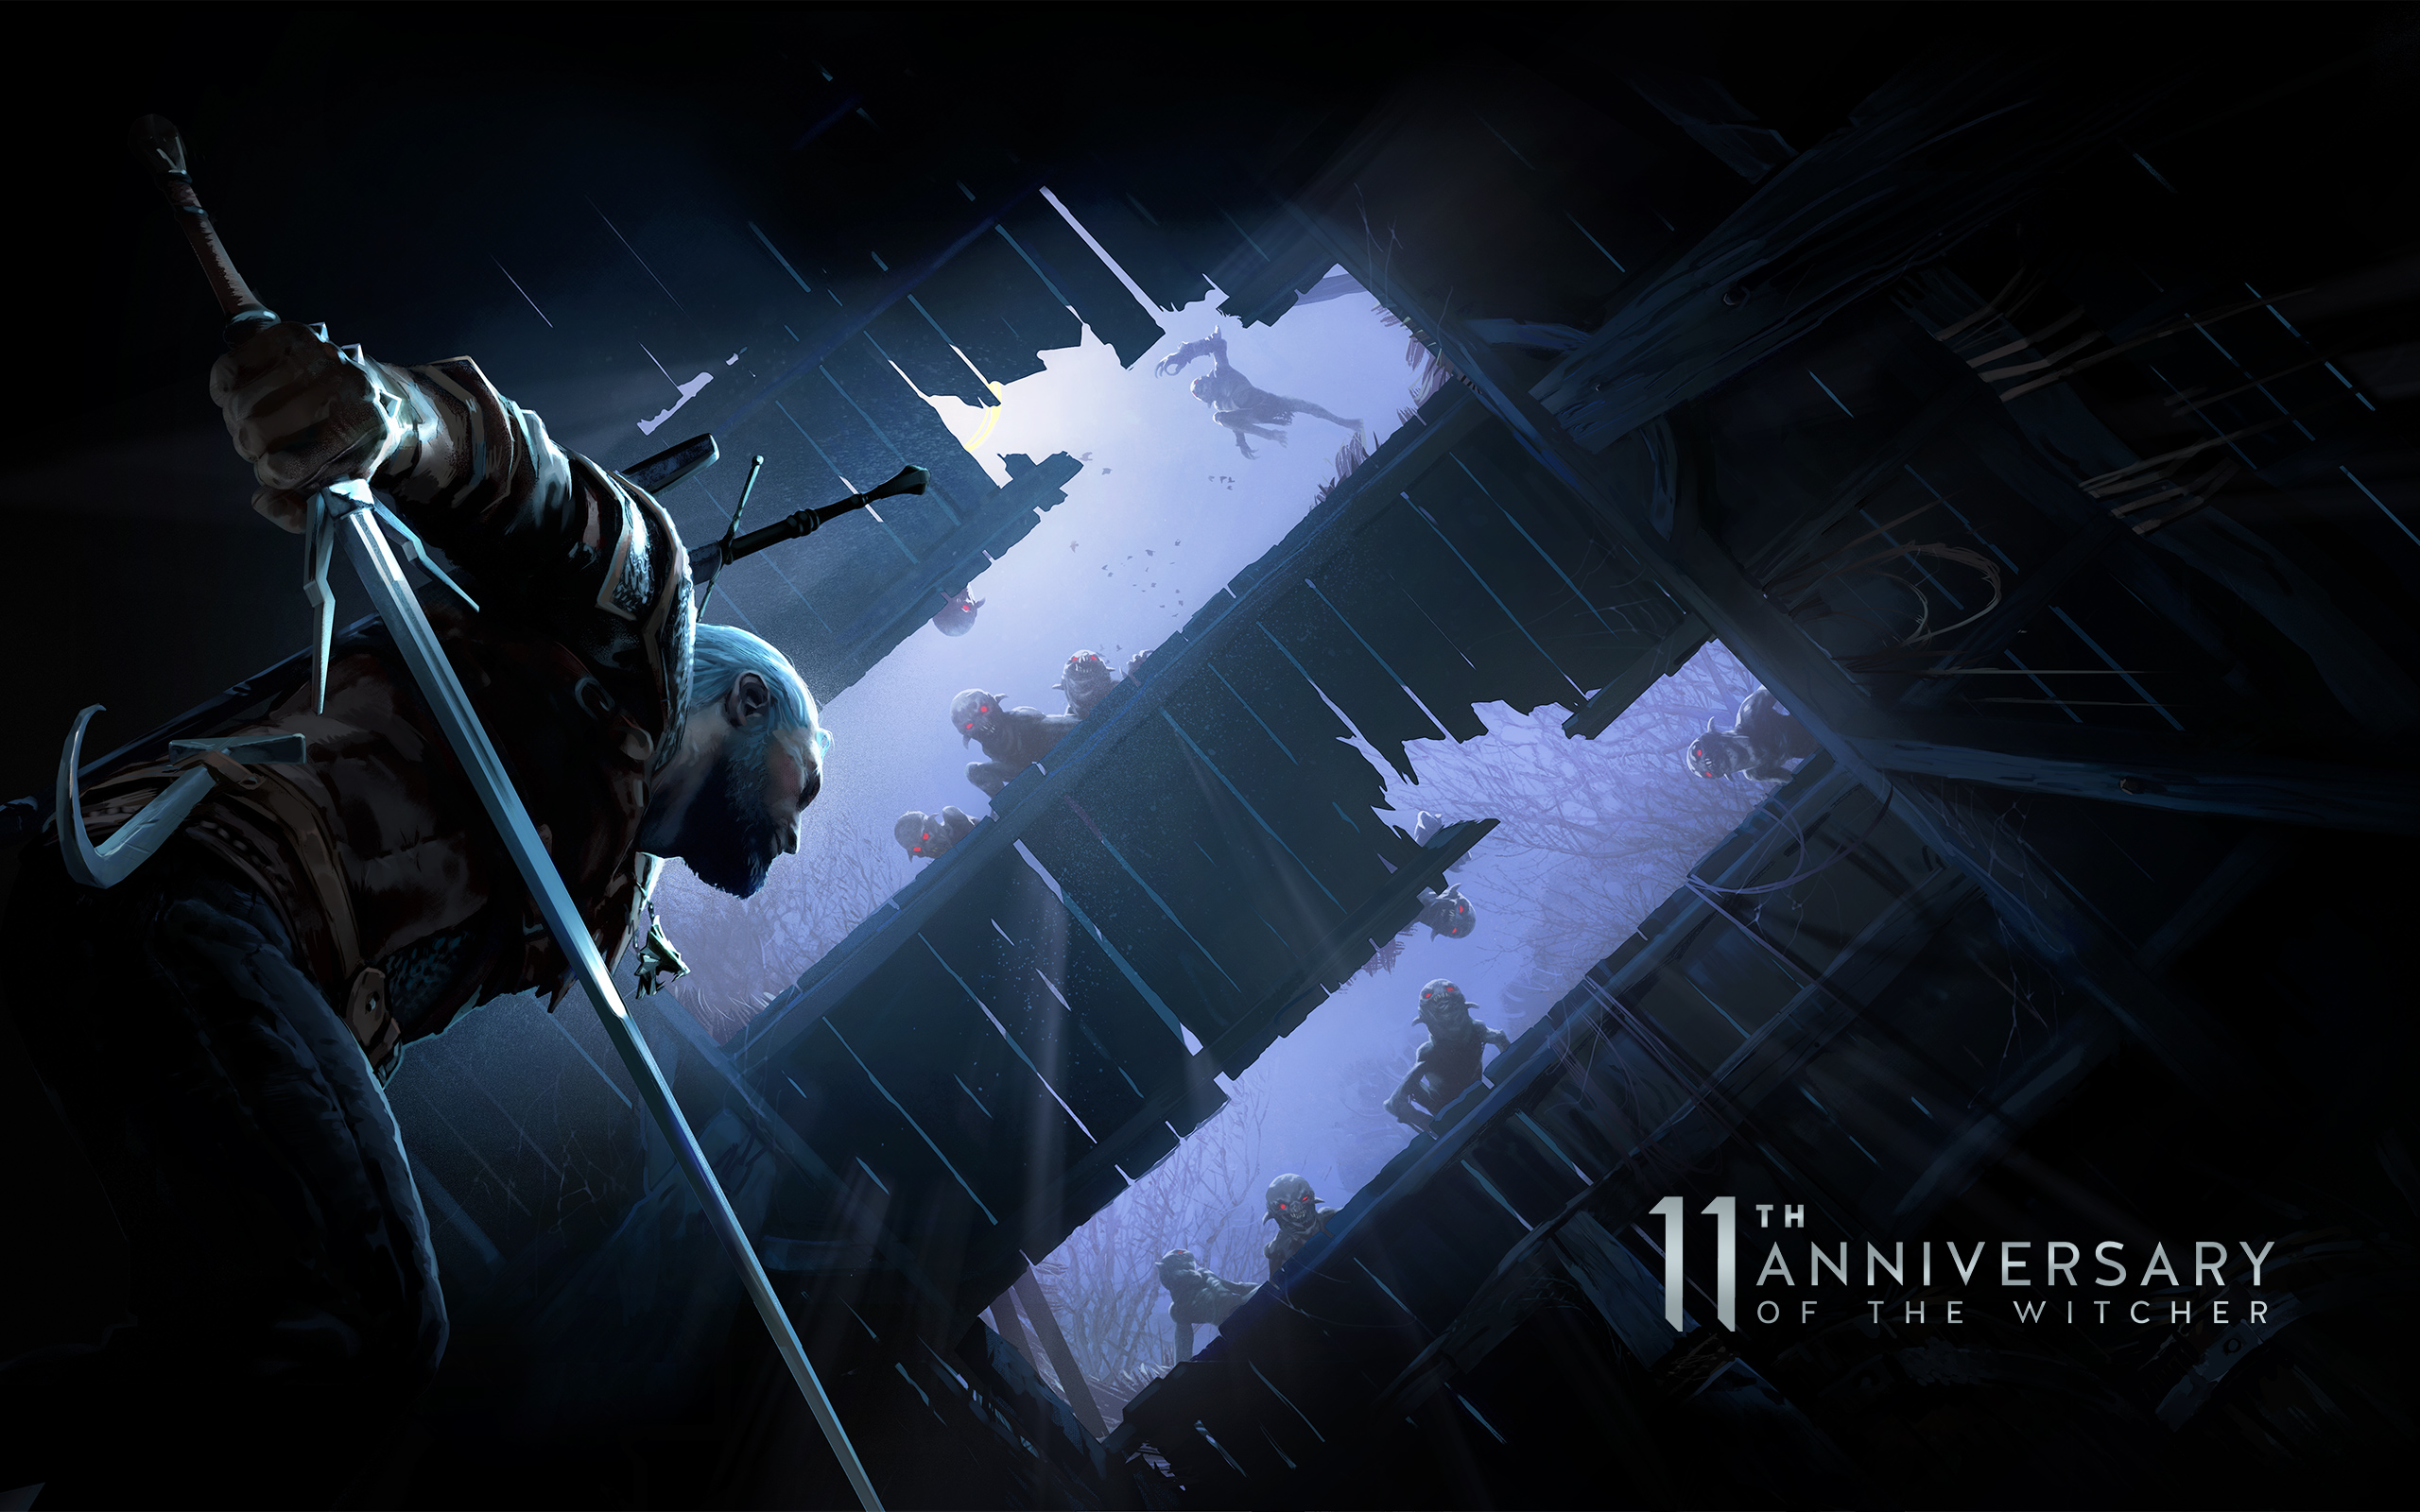 Witcher 11th Anniversary Wallpapers Cd Projekt Red